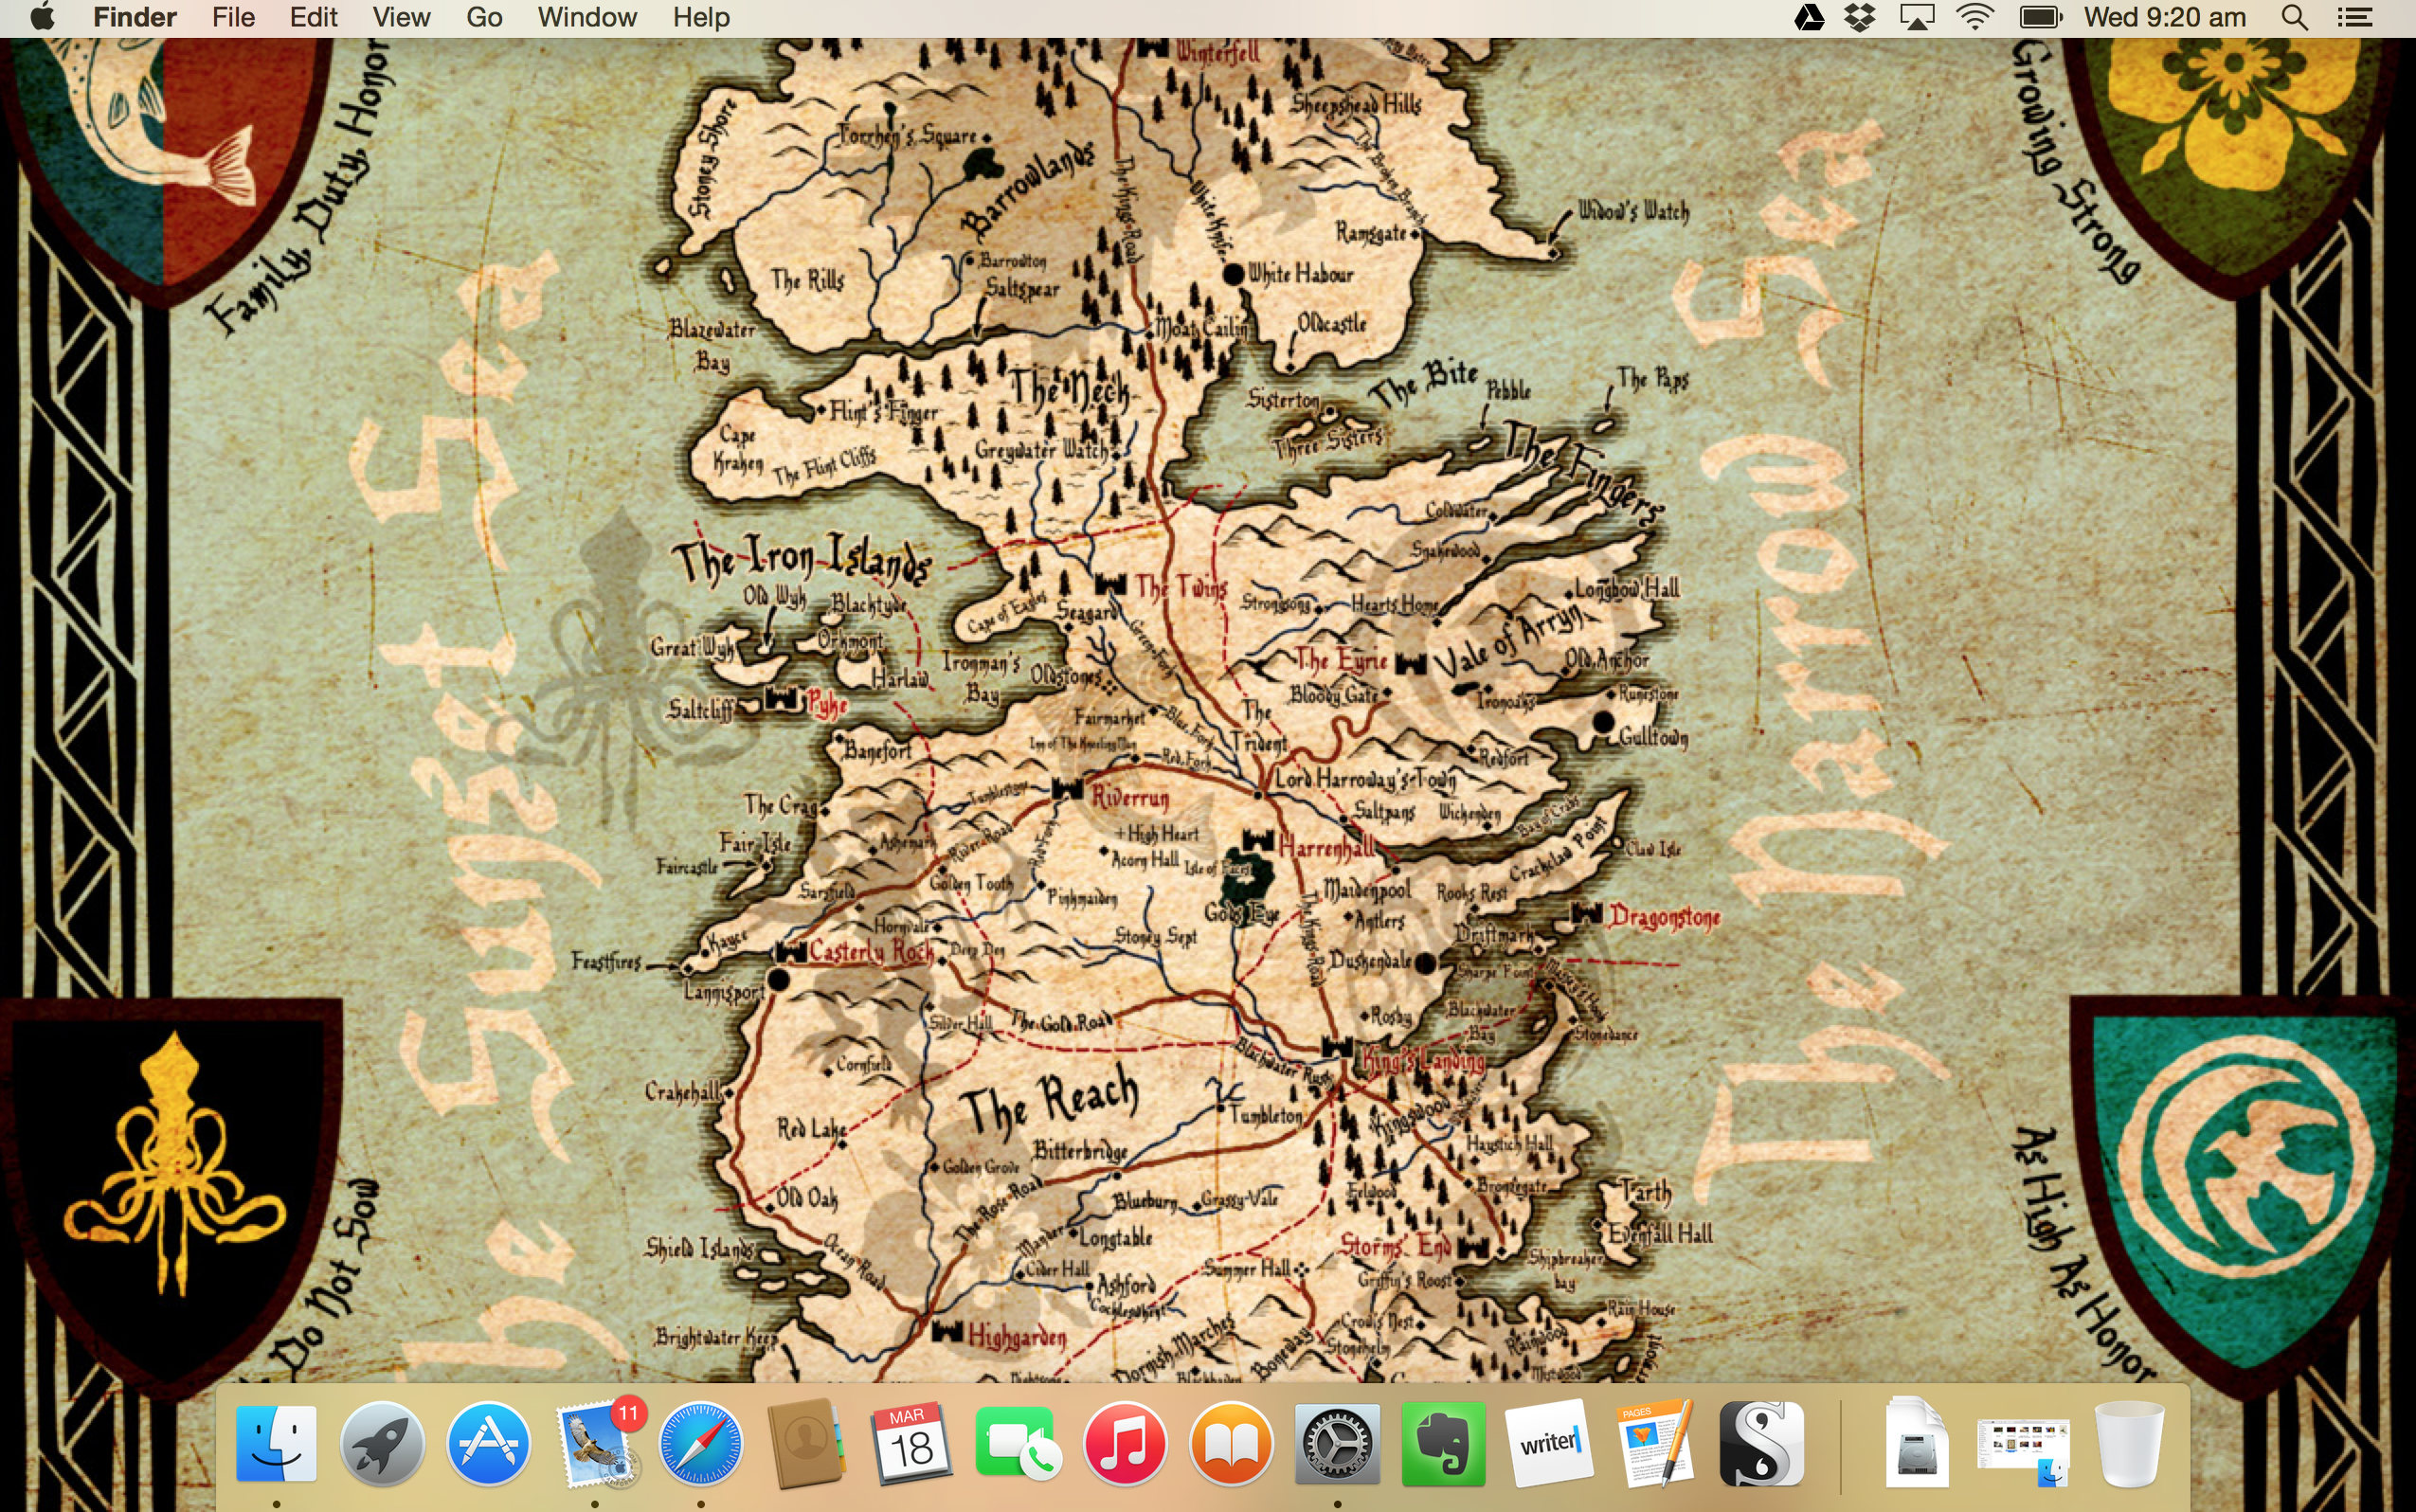 Game Of Thrones Map The 7 Kingdoms. Game Of Thrones King's ... Game Of Thrones Kingdoms Map on game of thrones map wallpaper, game of thrones winterfell map, game of thrones board game map, game of thrones highgarden map, game of thrones the red keep map, diplomacy game of thrones map, game of thrones westeros map, game of thrones king's landing map, 1868 german kingdoms map, game of thrones map clans, kingdoms in anglo-saxon england map, canvas game of thrones map, game of thrones map of continents, game of thrones interactive map, game of thrones realm map, game of thrones book map, game of thrones city map, game of thrones full map, game of thrones political map, game of thrones ireland locations map,